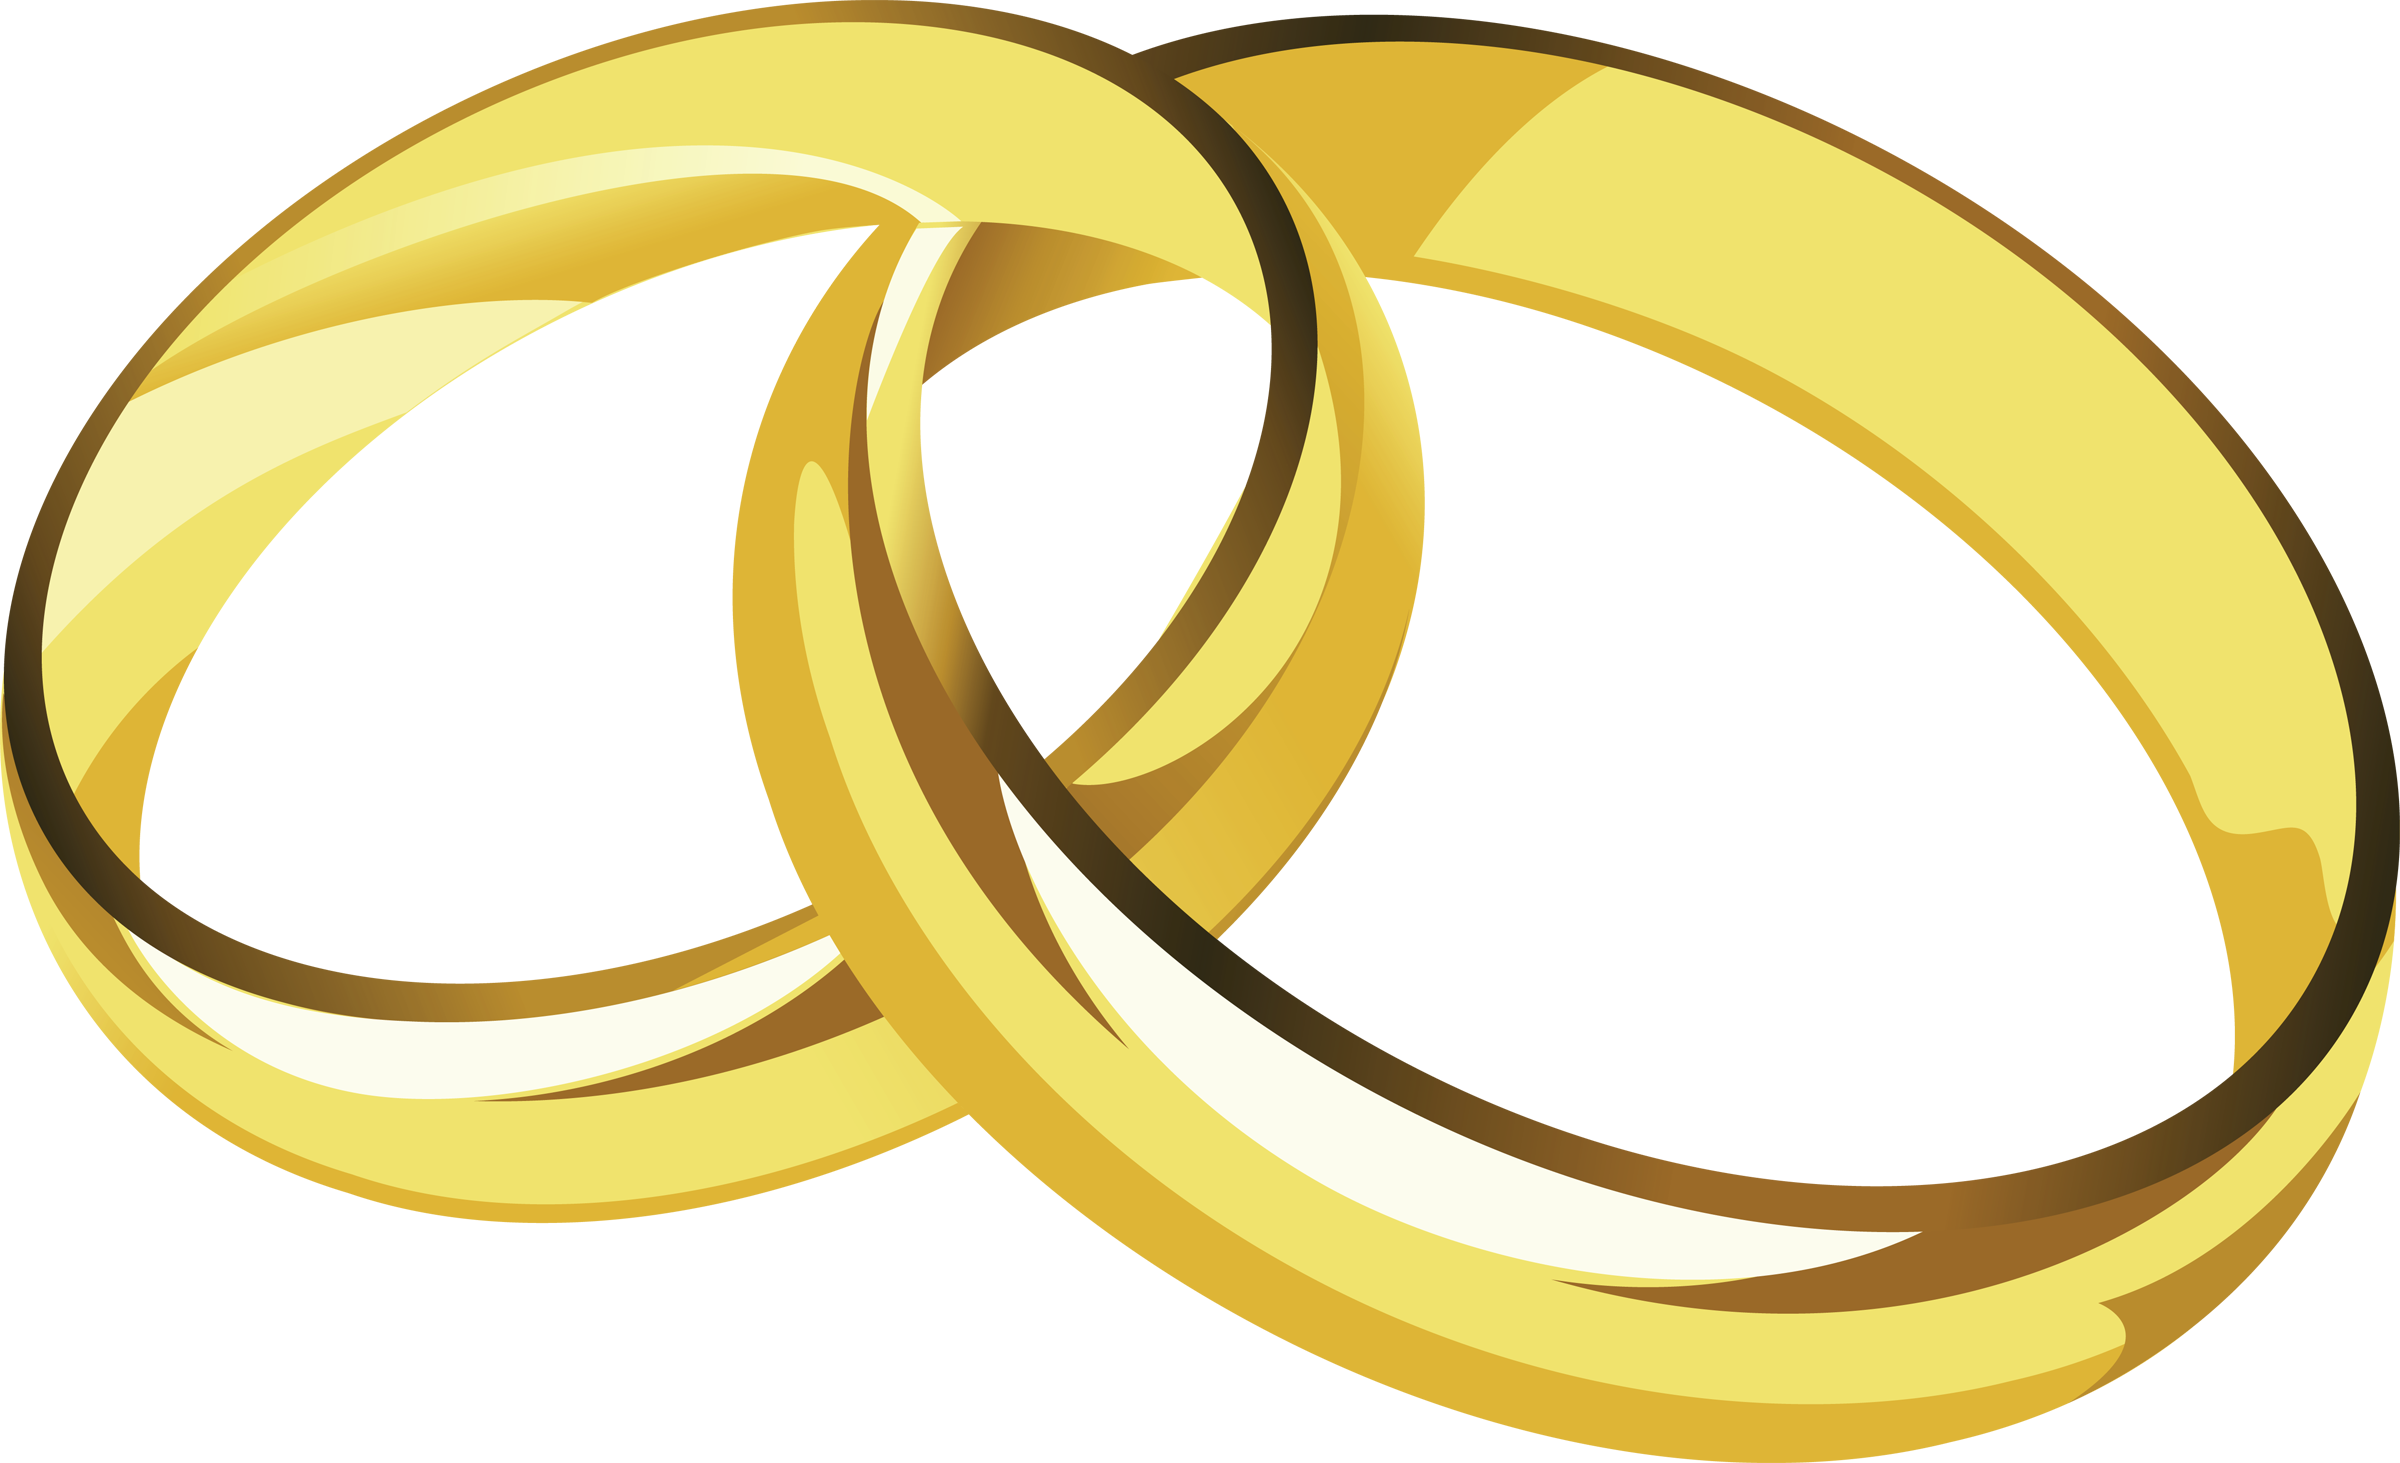 2400x1463 Awesome And Beautiful Wedding Ring Clipart Rings Clip Art Golden